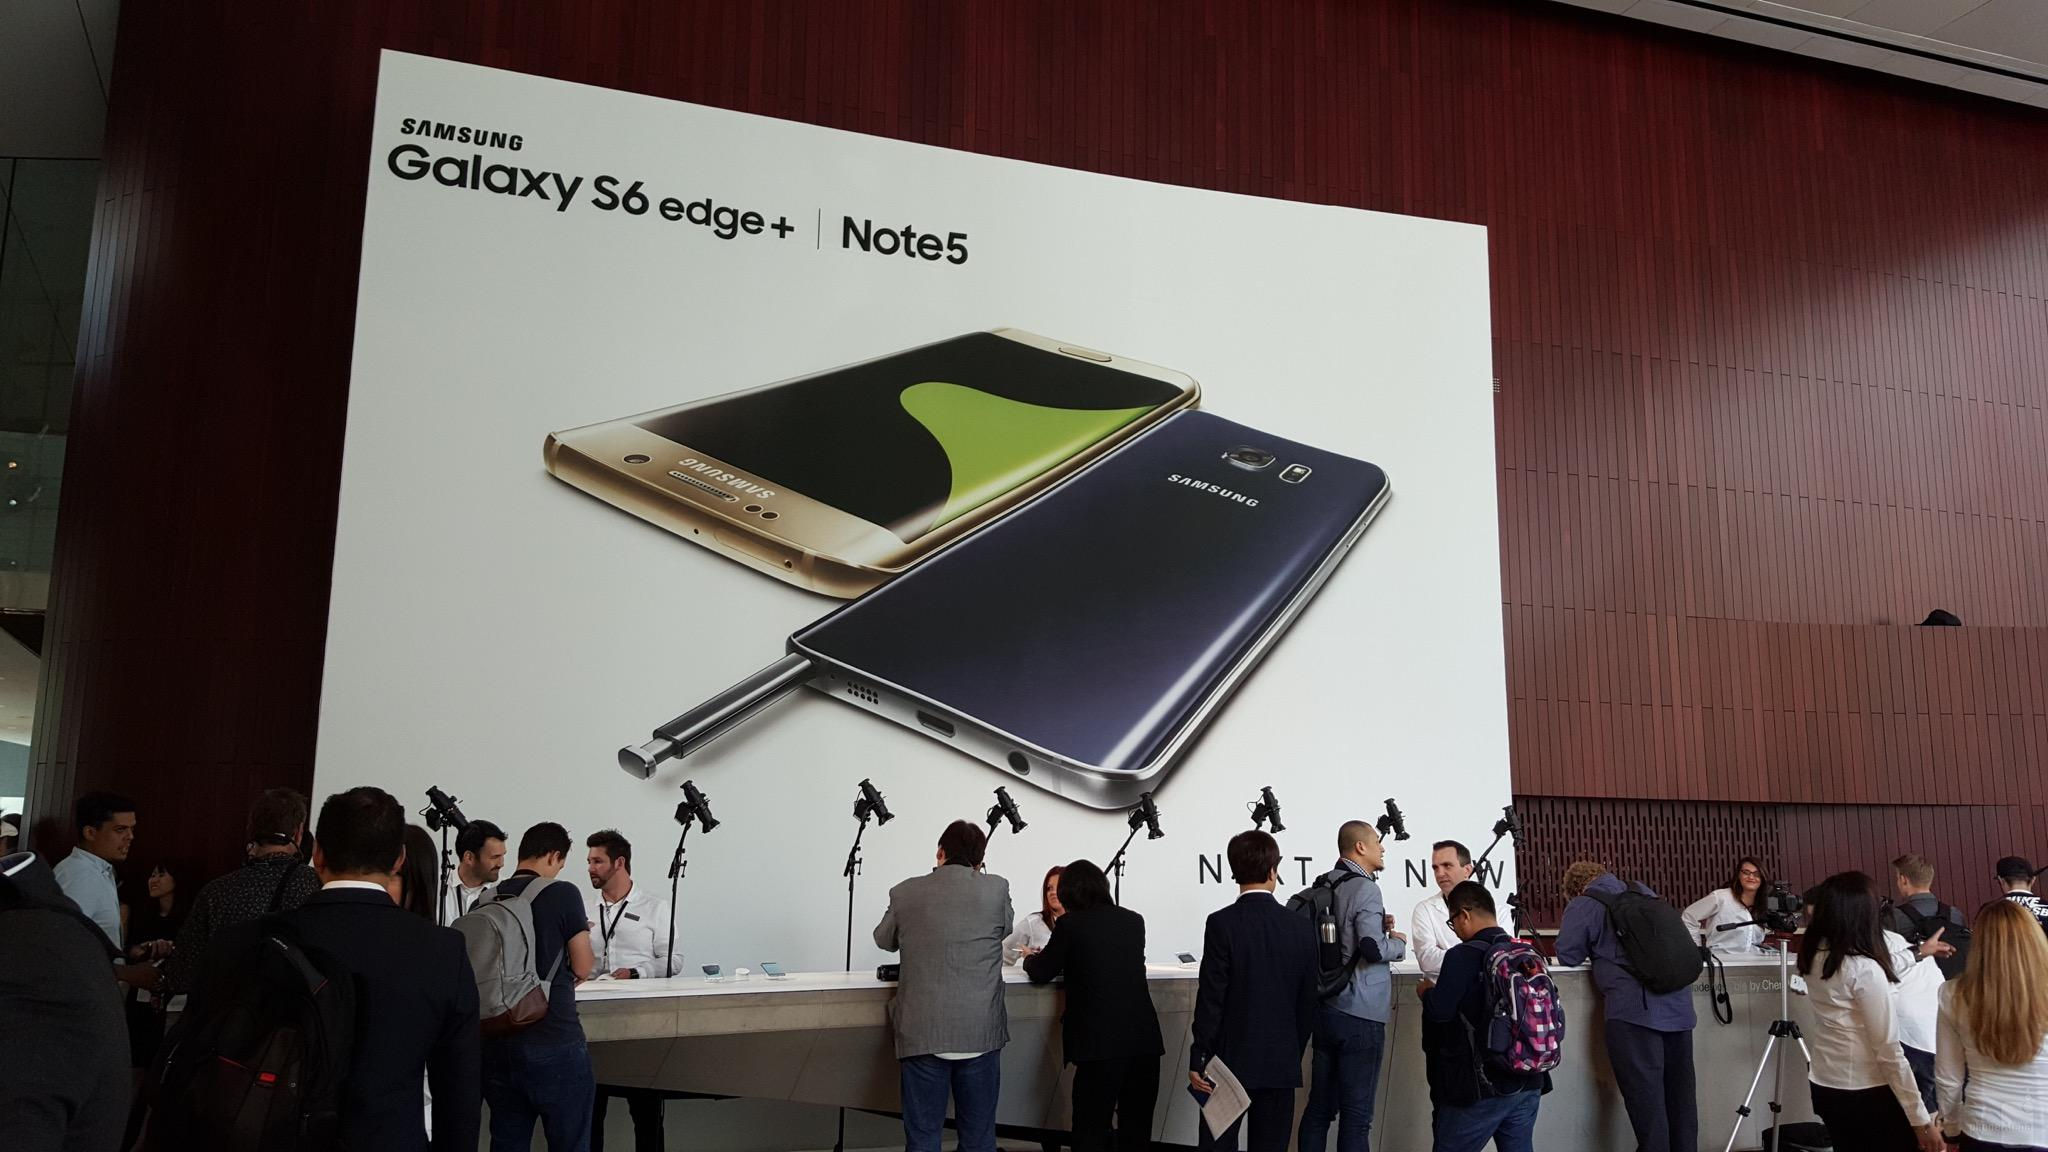 cartel samsung con nuevos Galaxy S6 edge+ y note 5